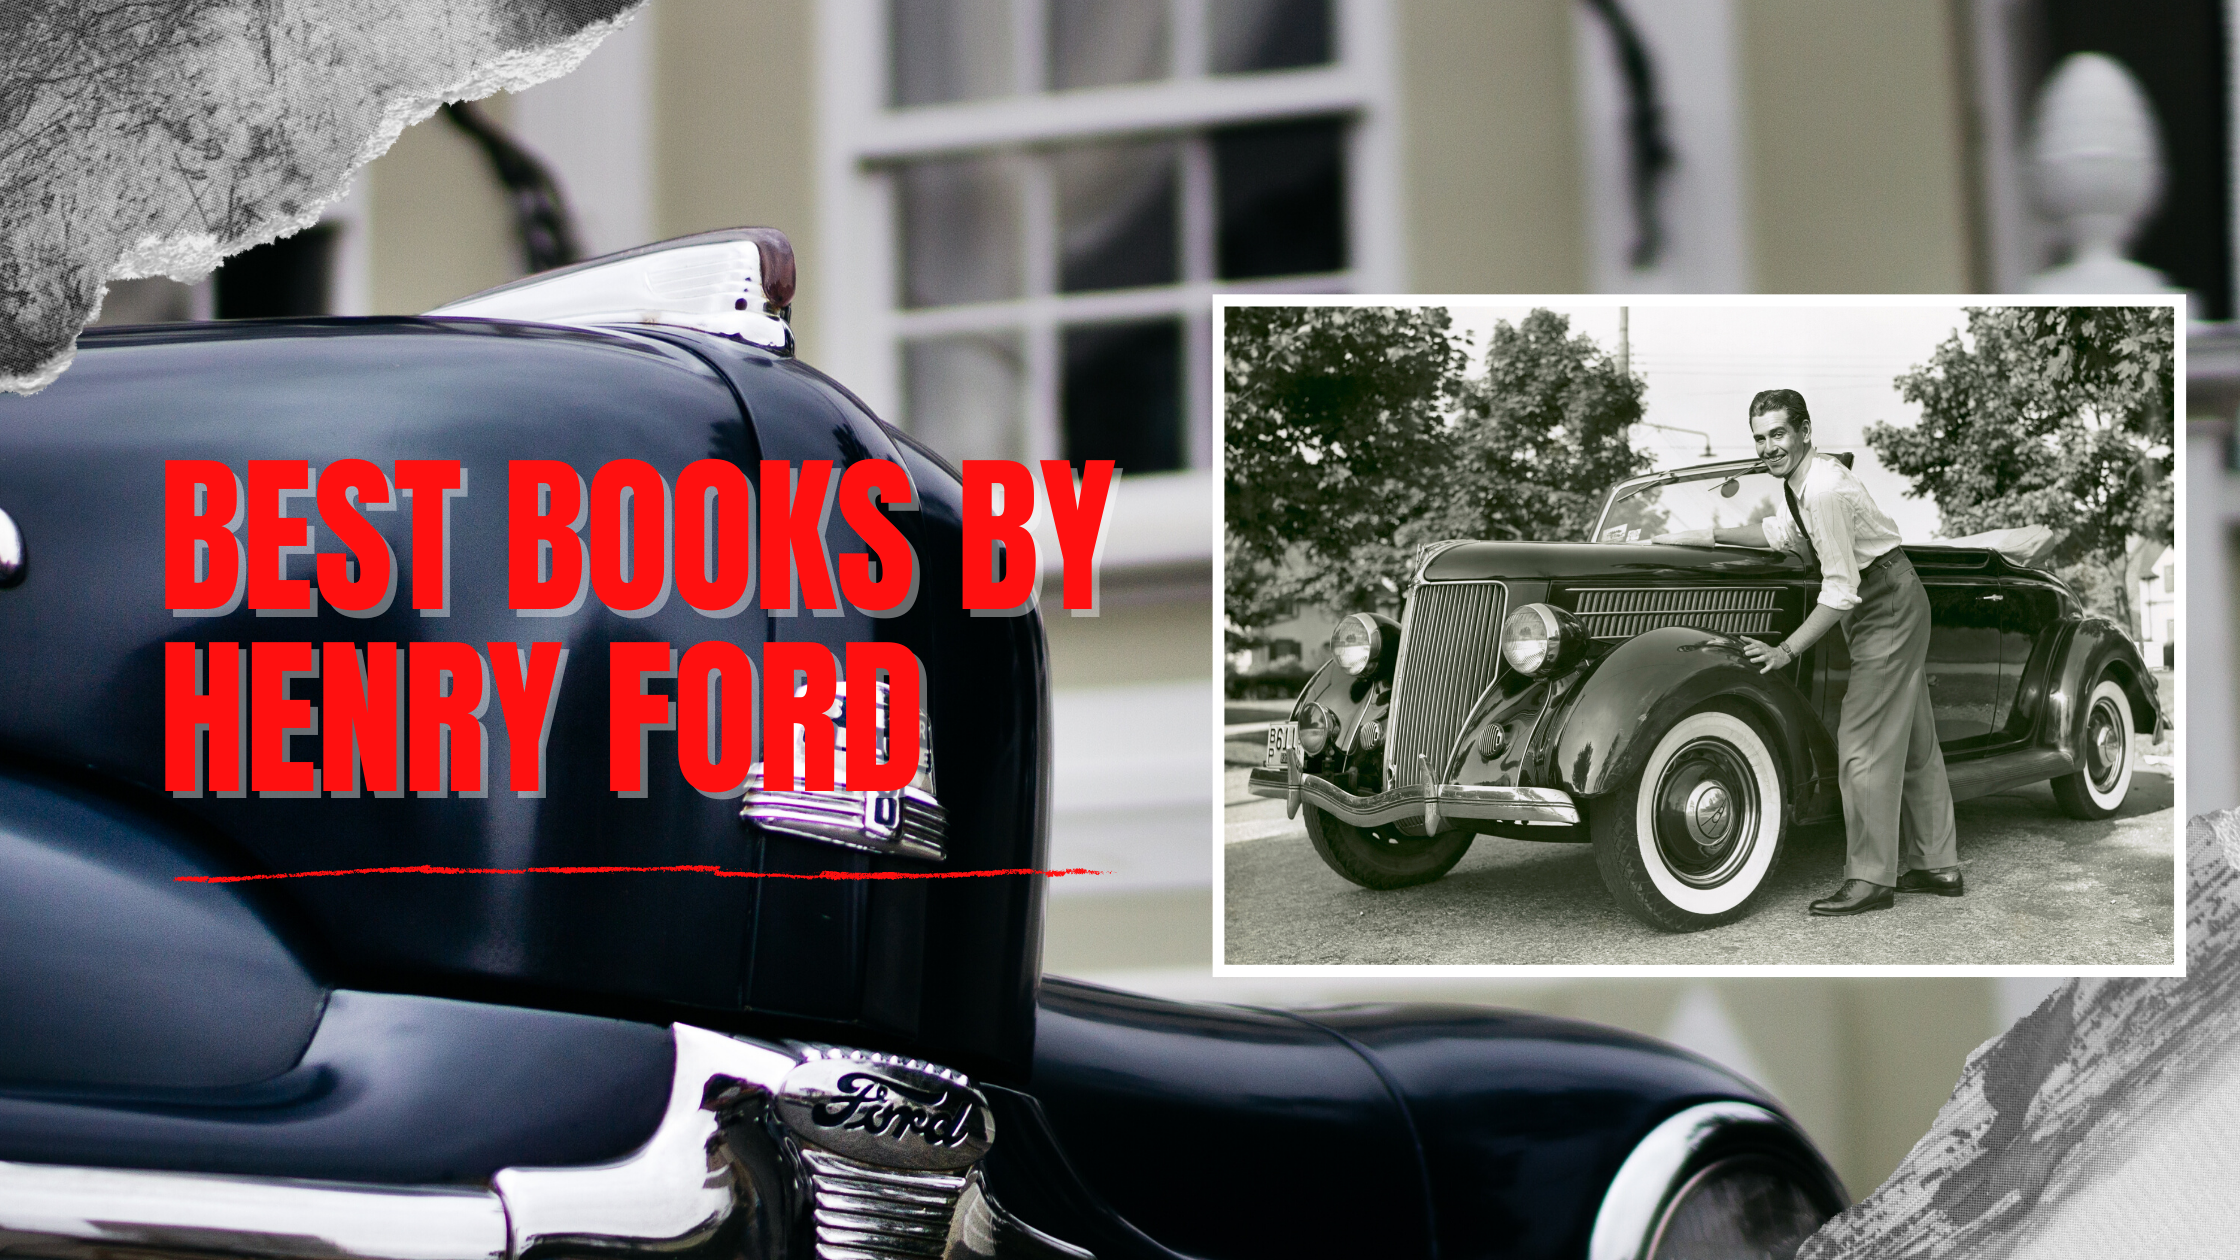 Best Books by Henry Ford